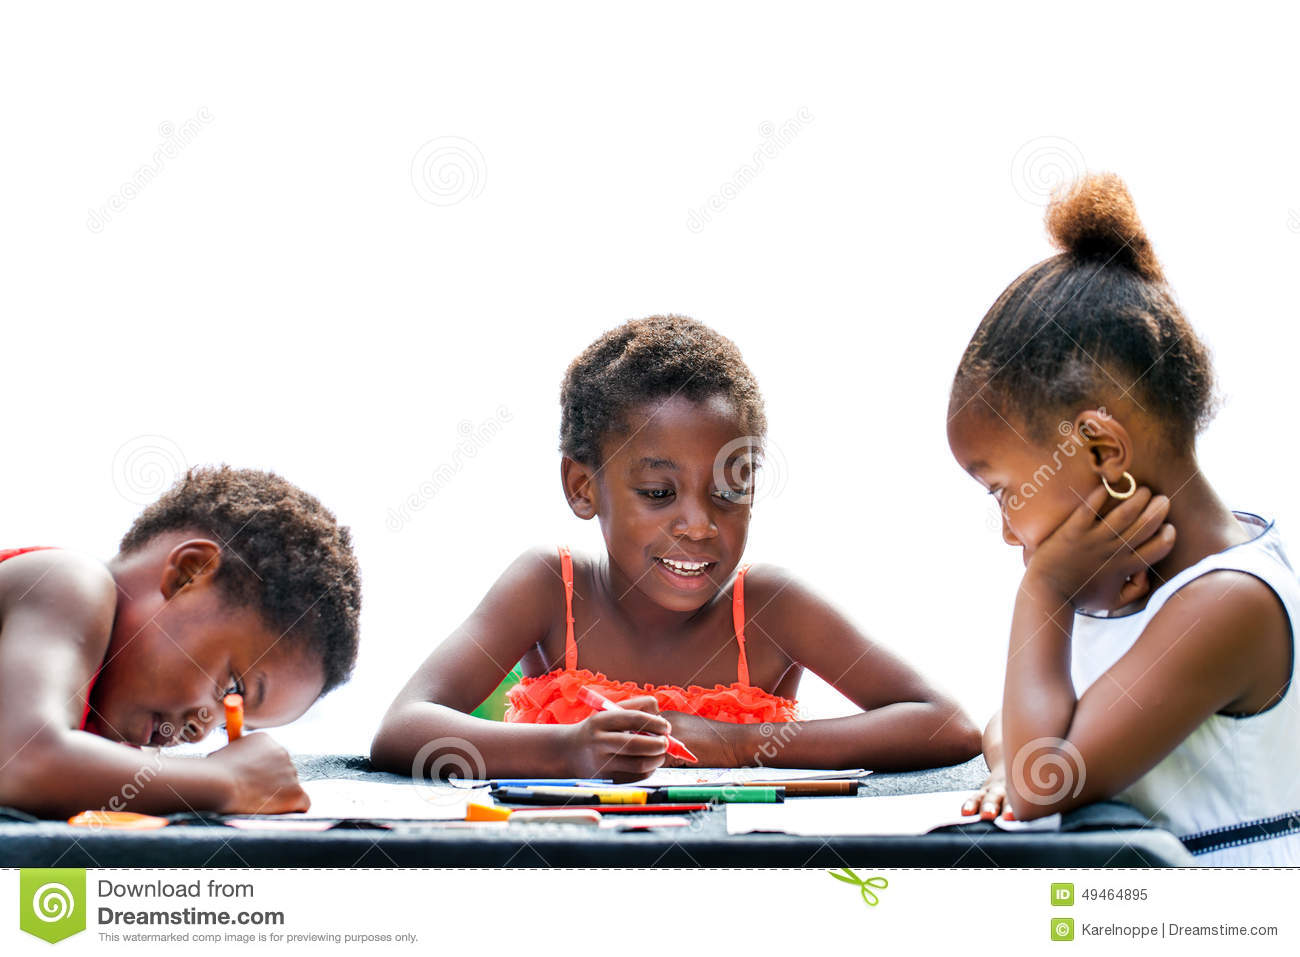 Three African kids drawing together.